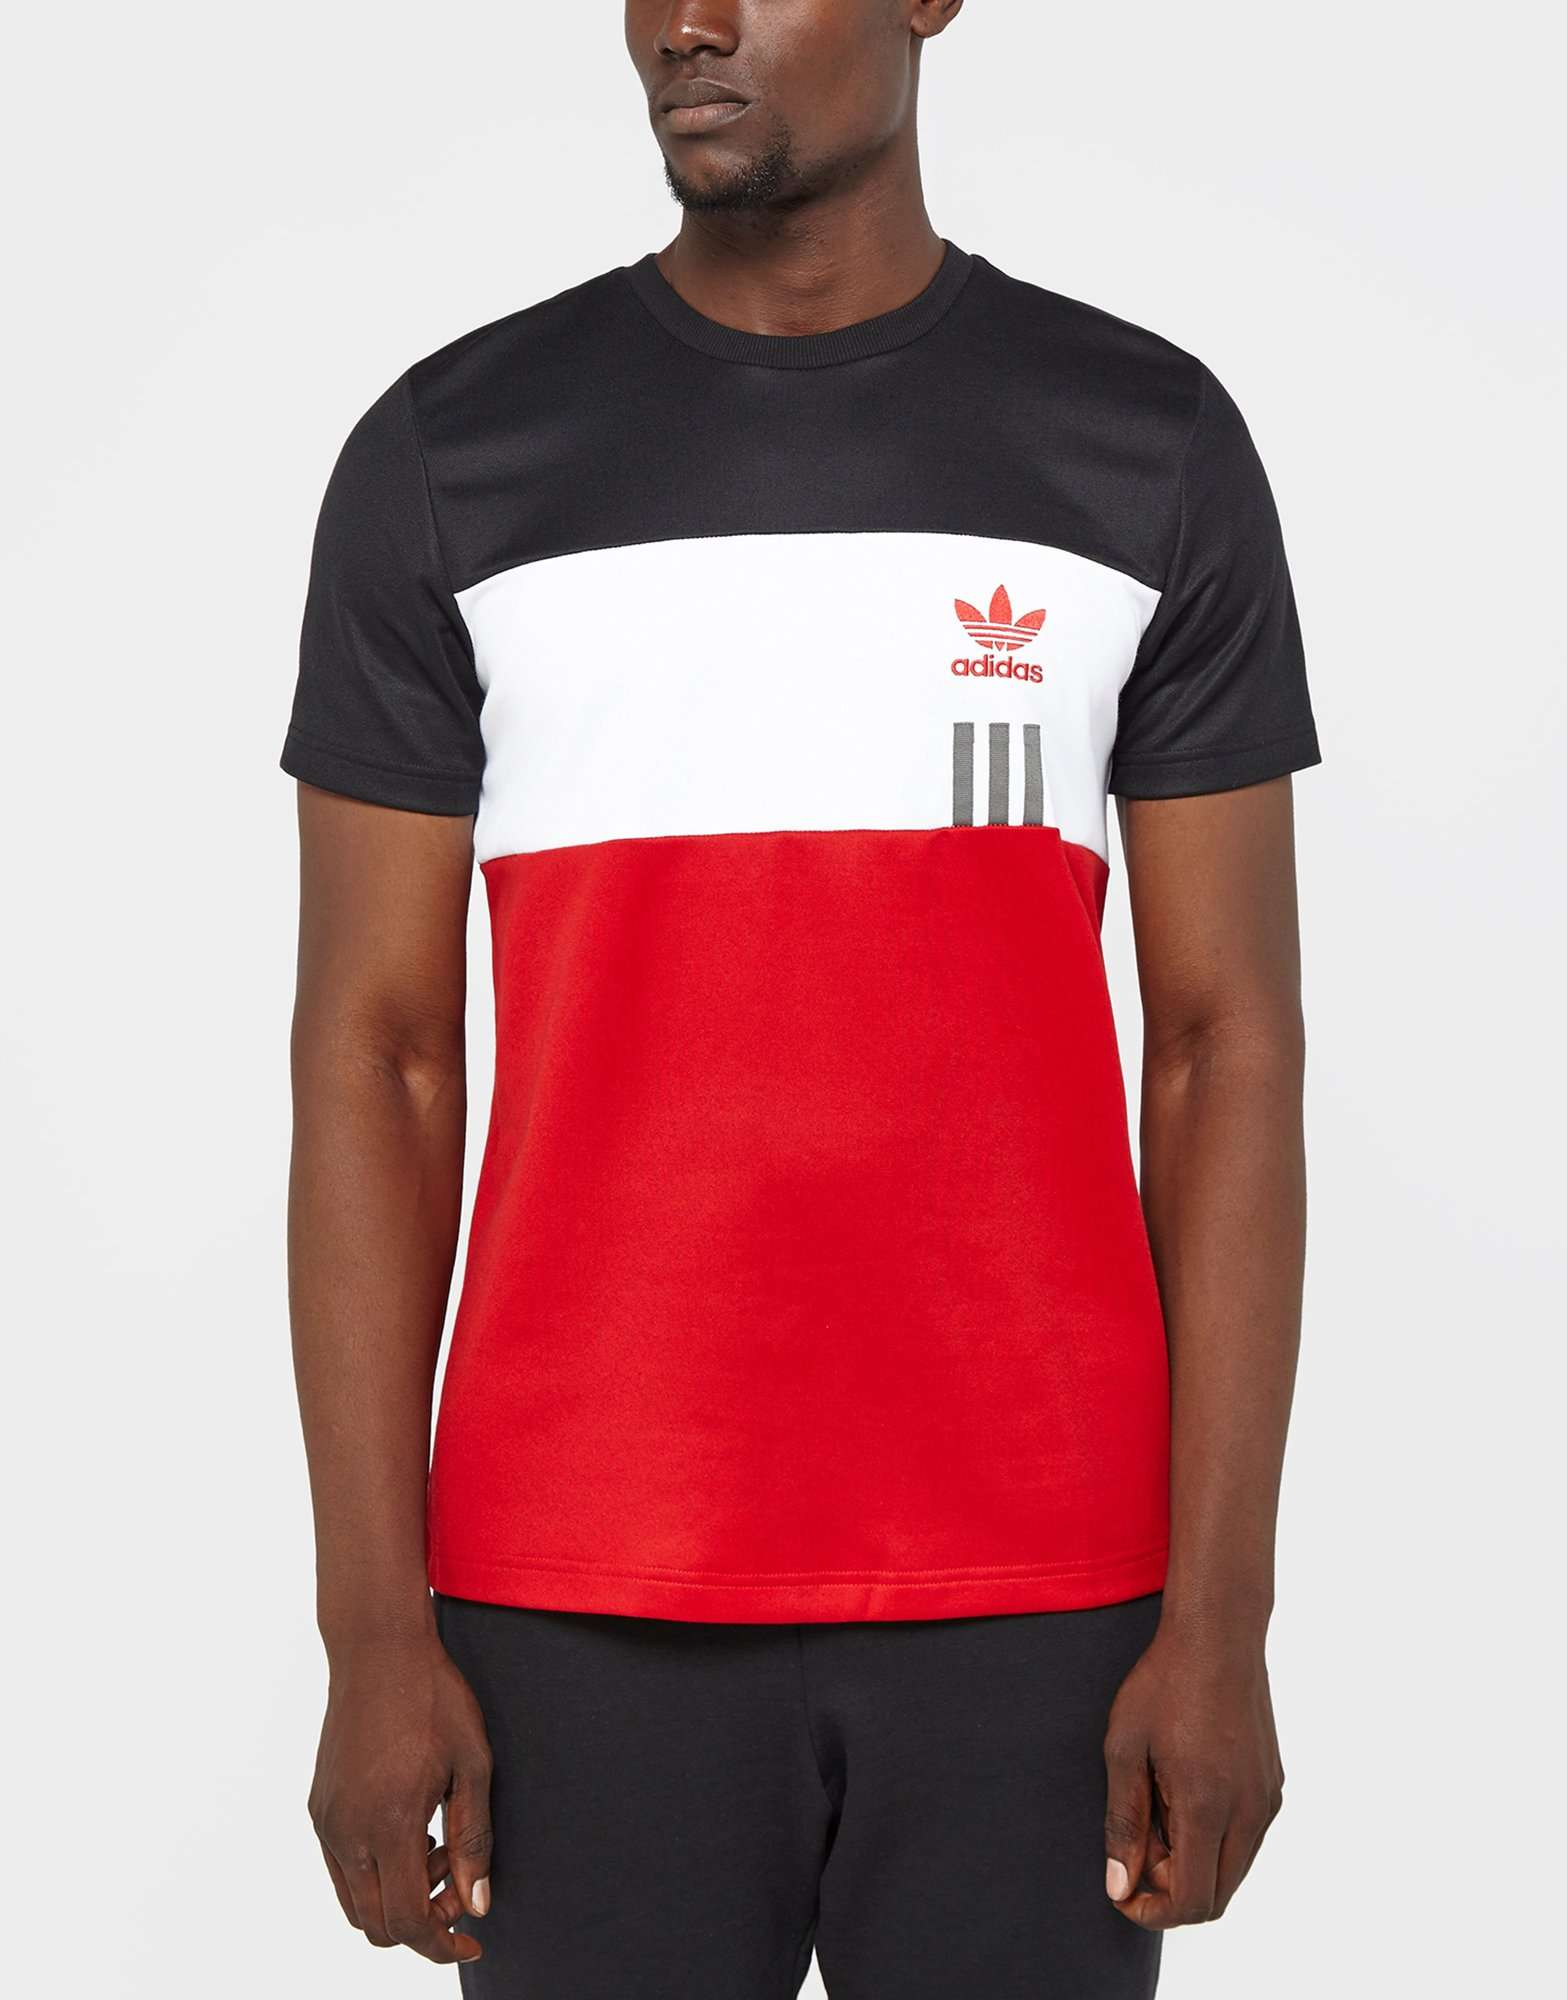 cafe3f03 White And Red Adidas T Shirt - DREAMWORKS